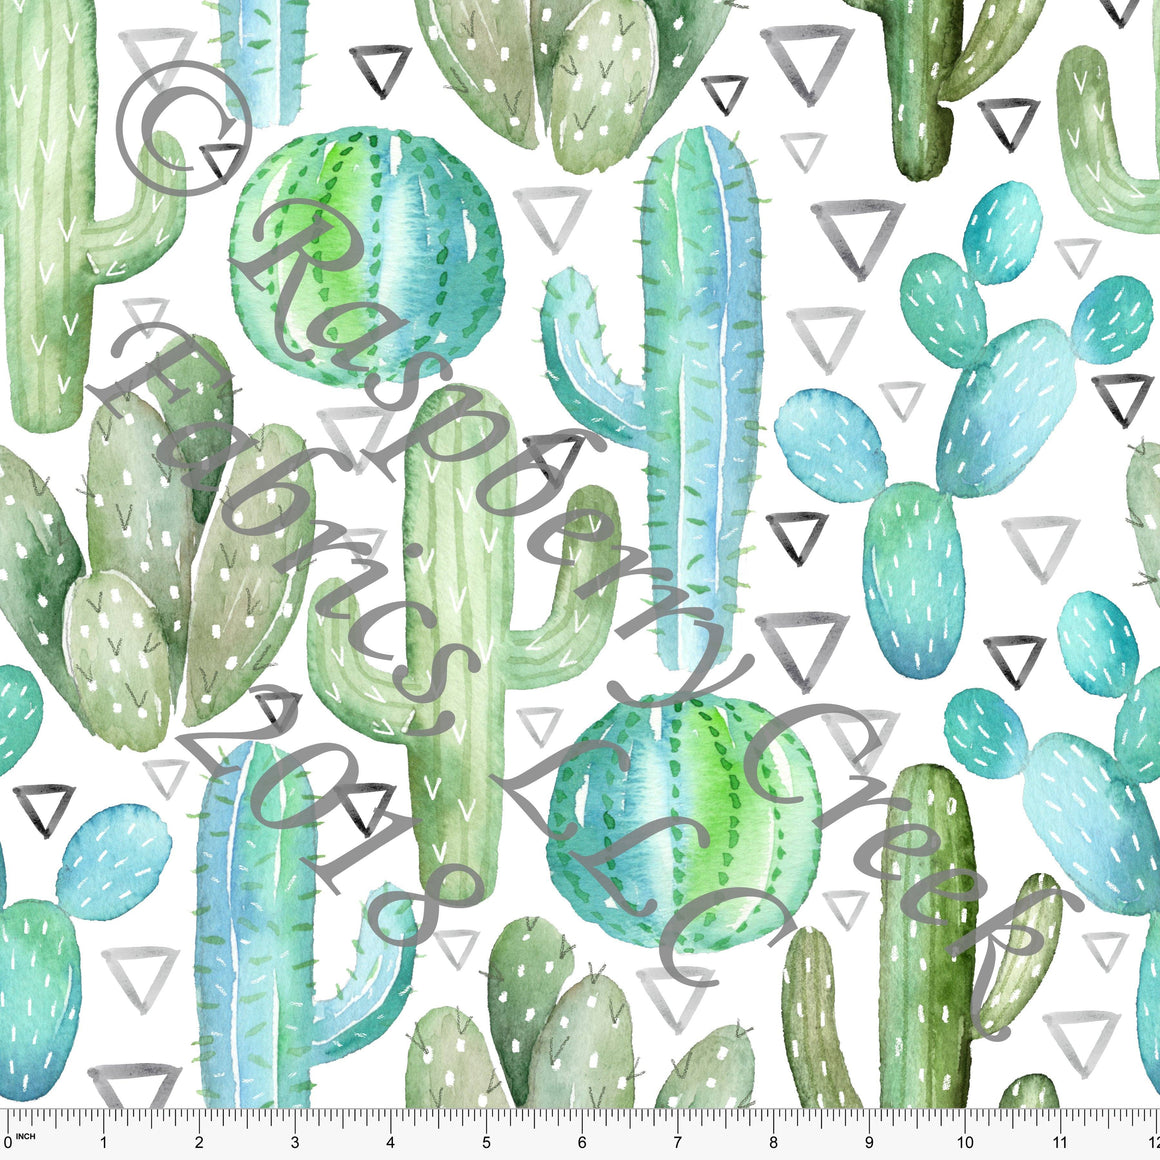 Seafoam Green Blue and Grey Cactus Triangle 4 Way Stretch Jersey Knit Fabric, Club Fabrics